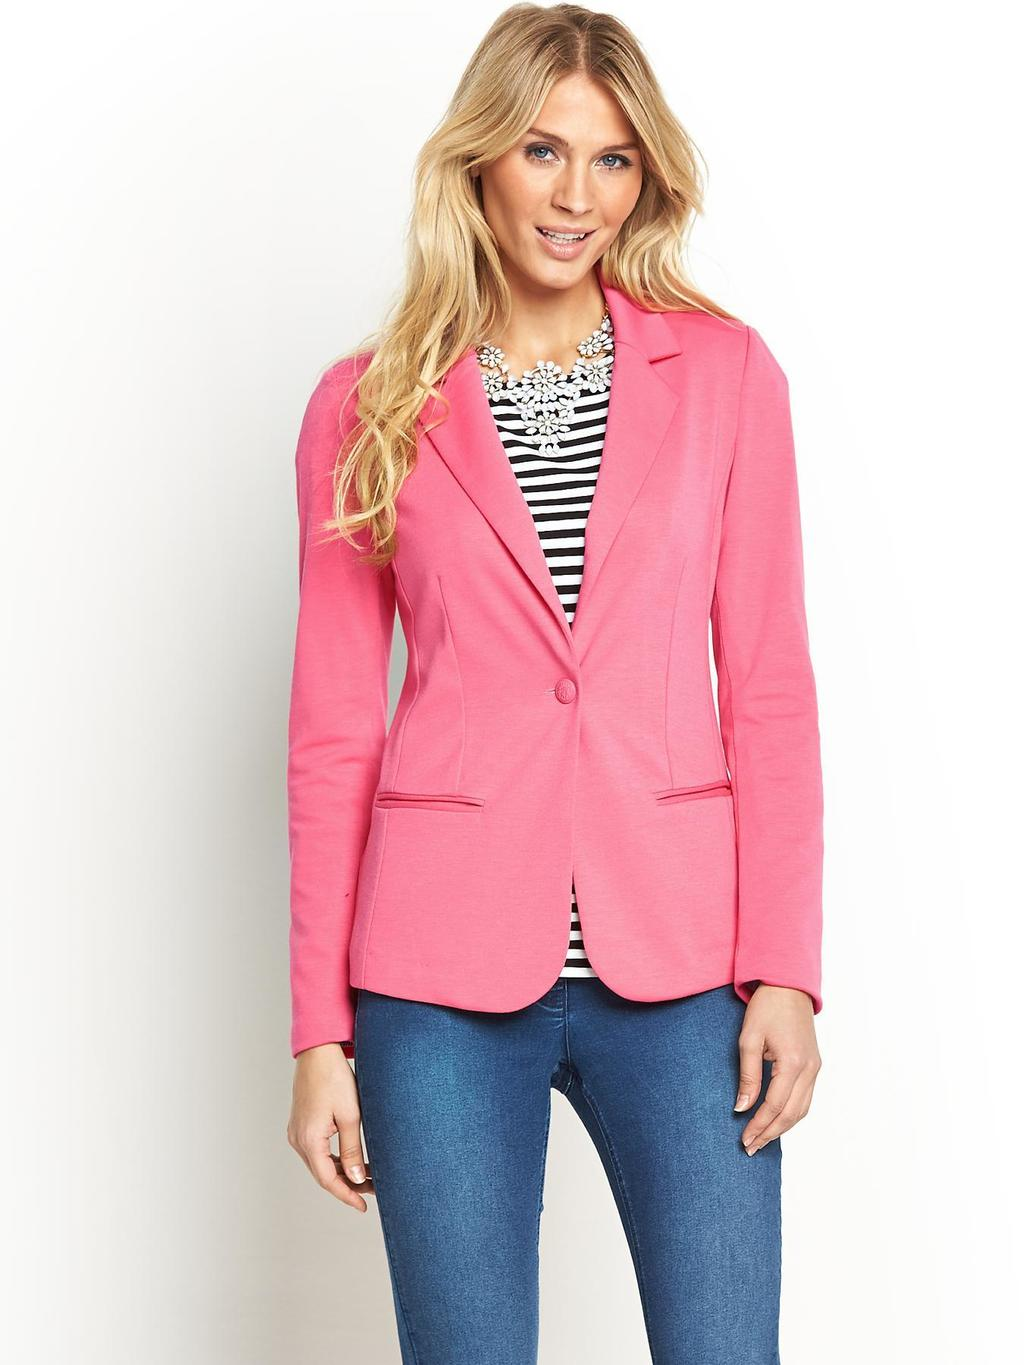 Jersey Blazer, Black - pattern: plain; style: single breasted blazer; collar: standard lapel/rever collar; predominant colour: pink; occasions: casual, evening, creative work; length: standard; fit: tailored/fitted; fibres: polyester/polyamide - stretch; sleeve length: long sleeve; sleeve style: standard; collar break: medium; pattern type: fabric; texture group: woven light midweight; trends: sorbet shades; season: s/s 2014